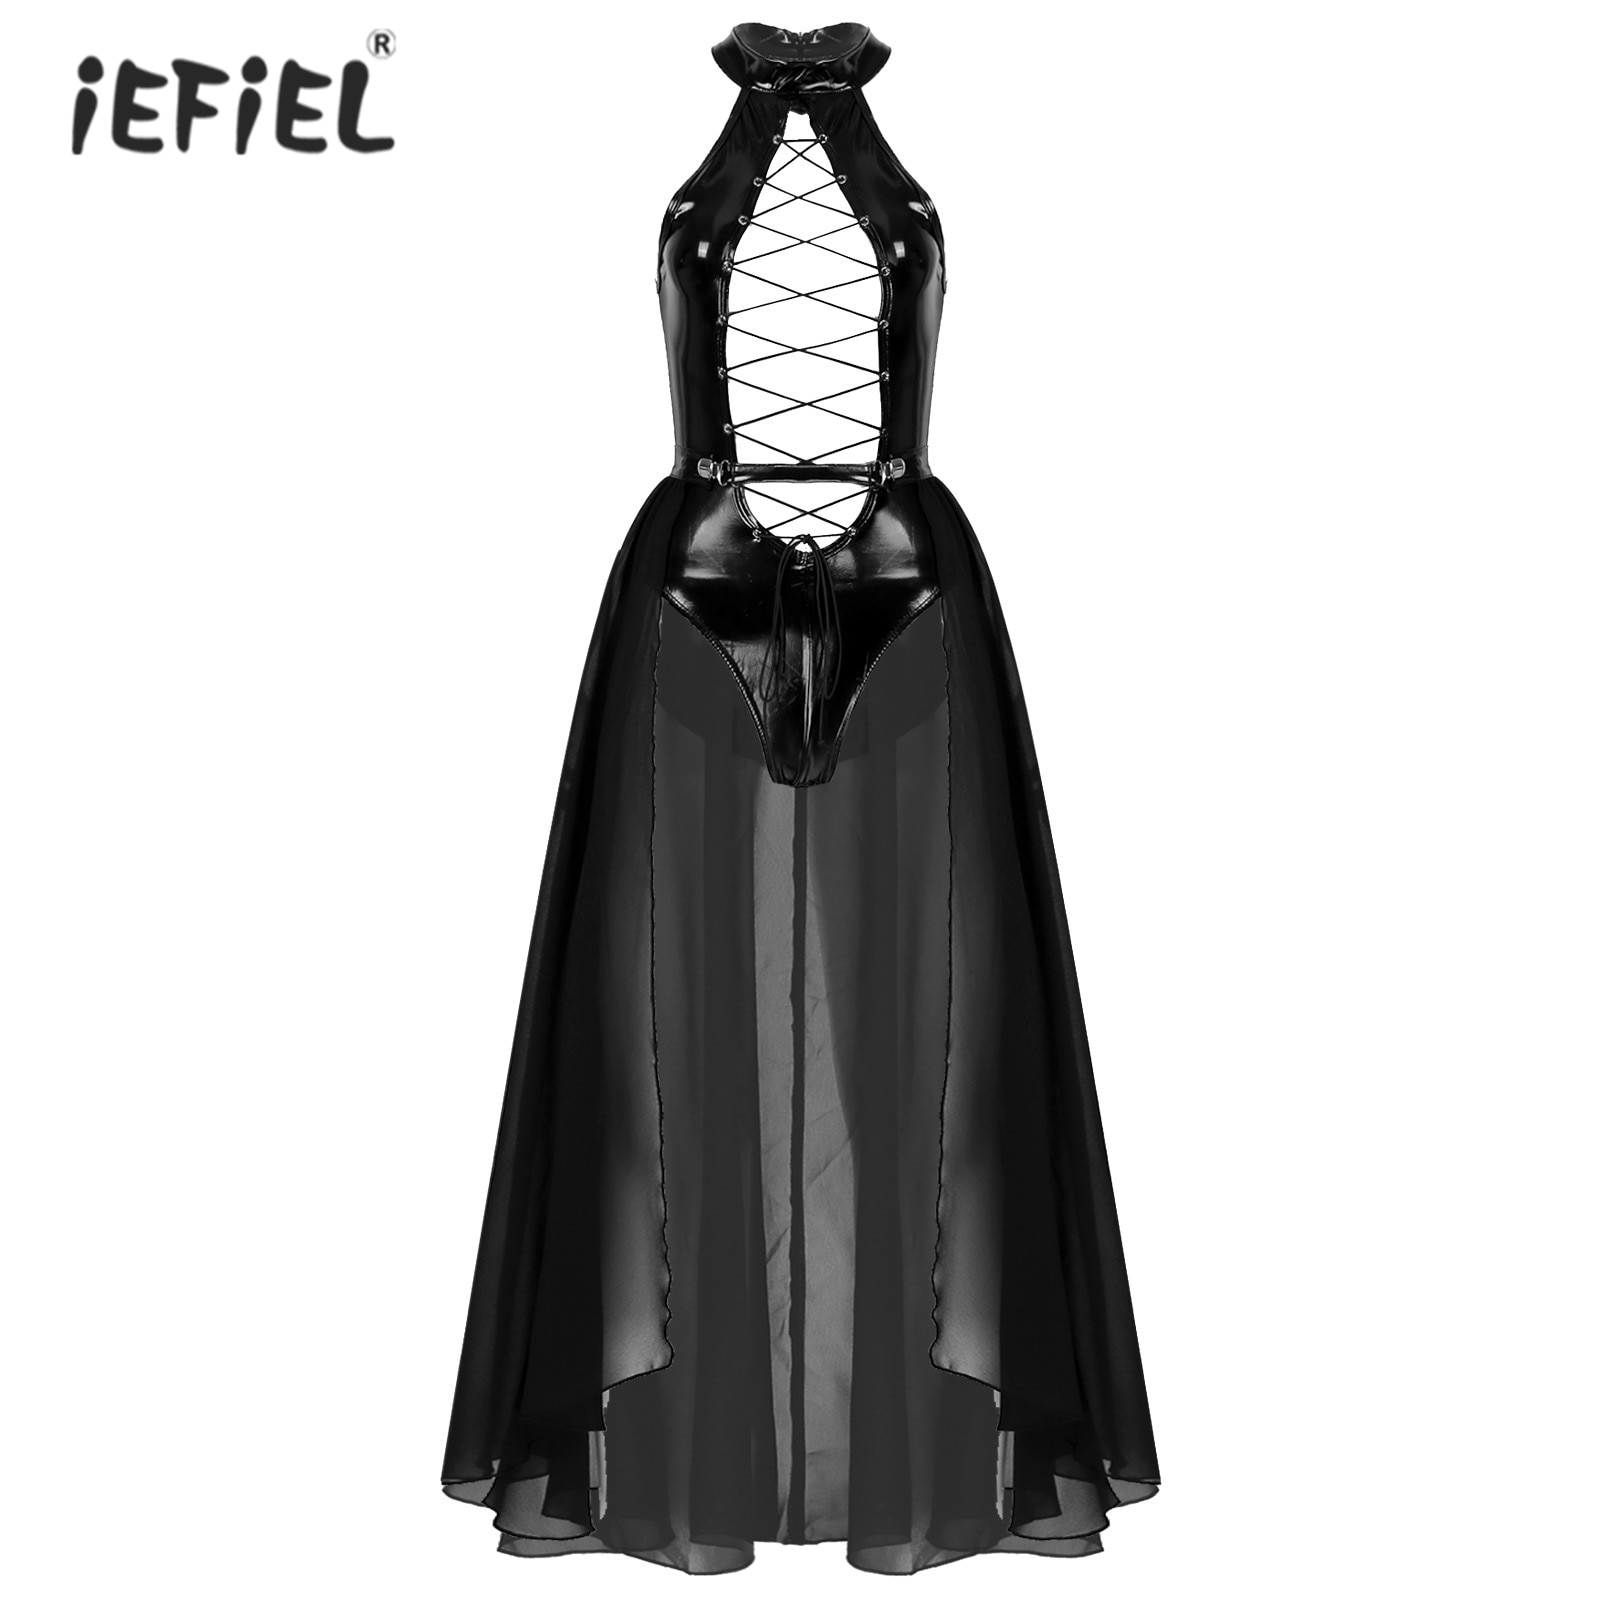 Womens Pole Dace Rave Party Outfits Wet Look Patent Leather Hollow Out Lace-up Bodysuit Mock Neck Sleeveless Leotard with Skirt